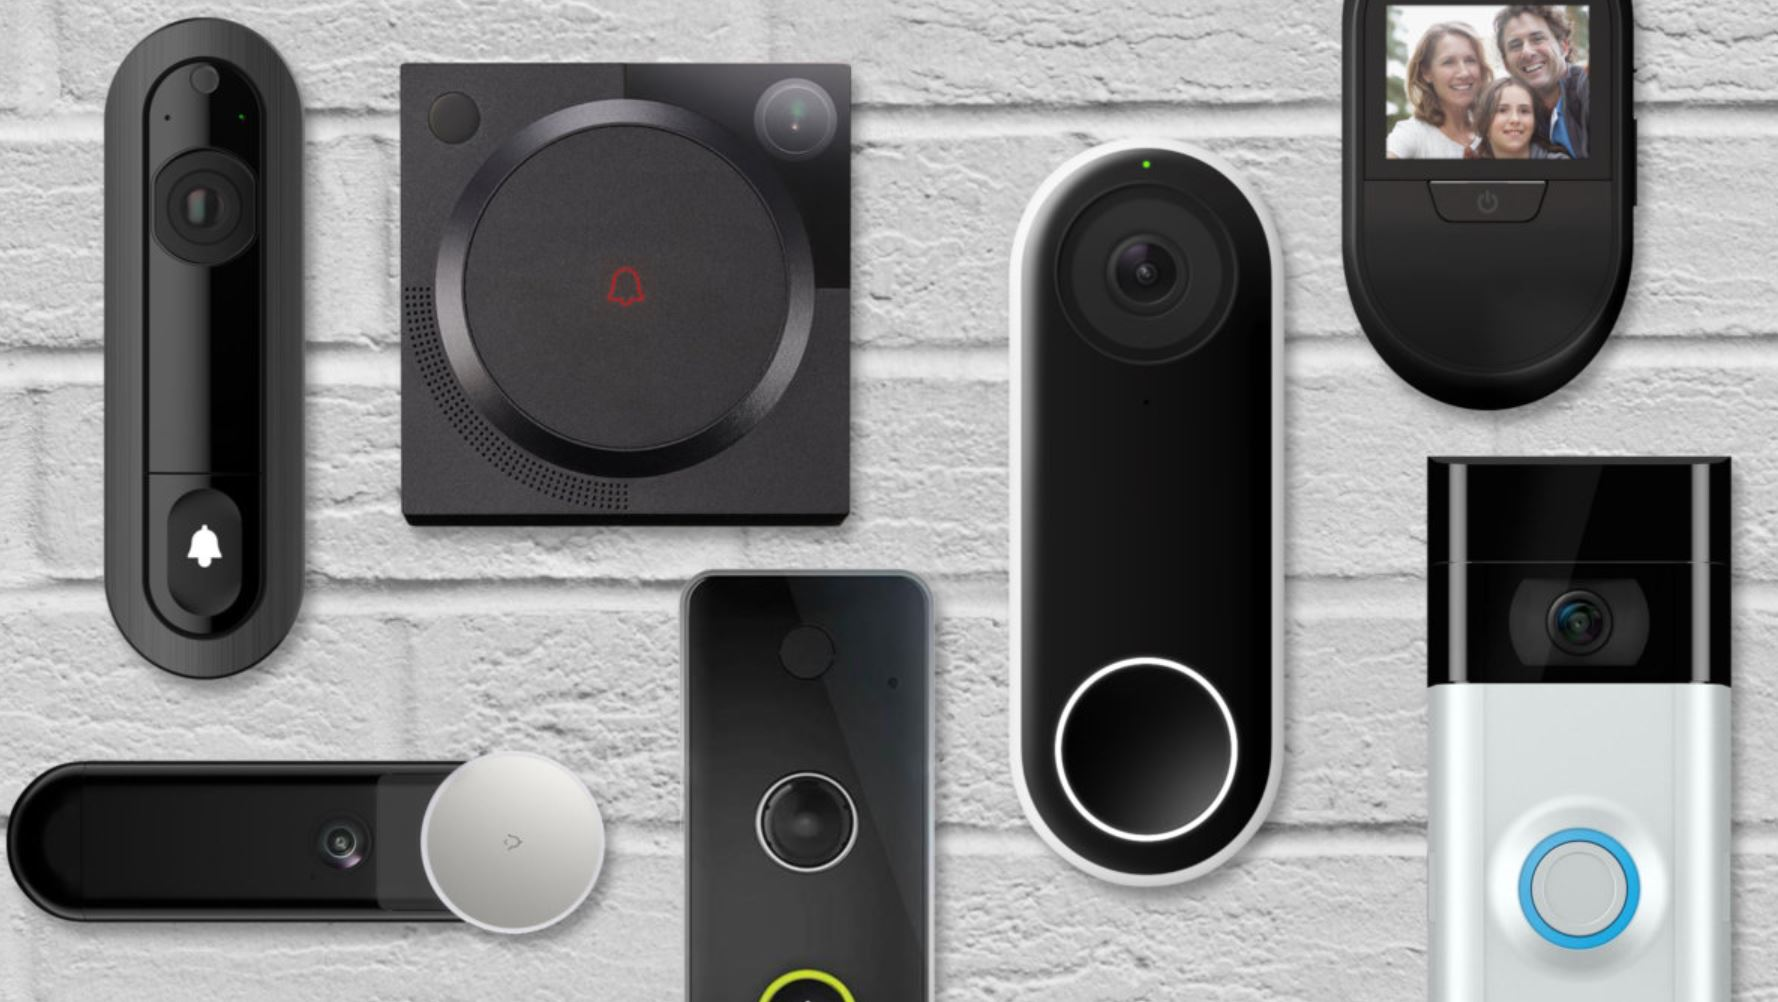 Smart Doorbells Other than Amazon Ring Cameras Have Serious Privacy and Security Risks